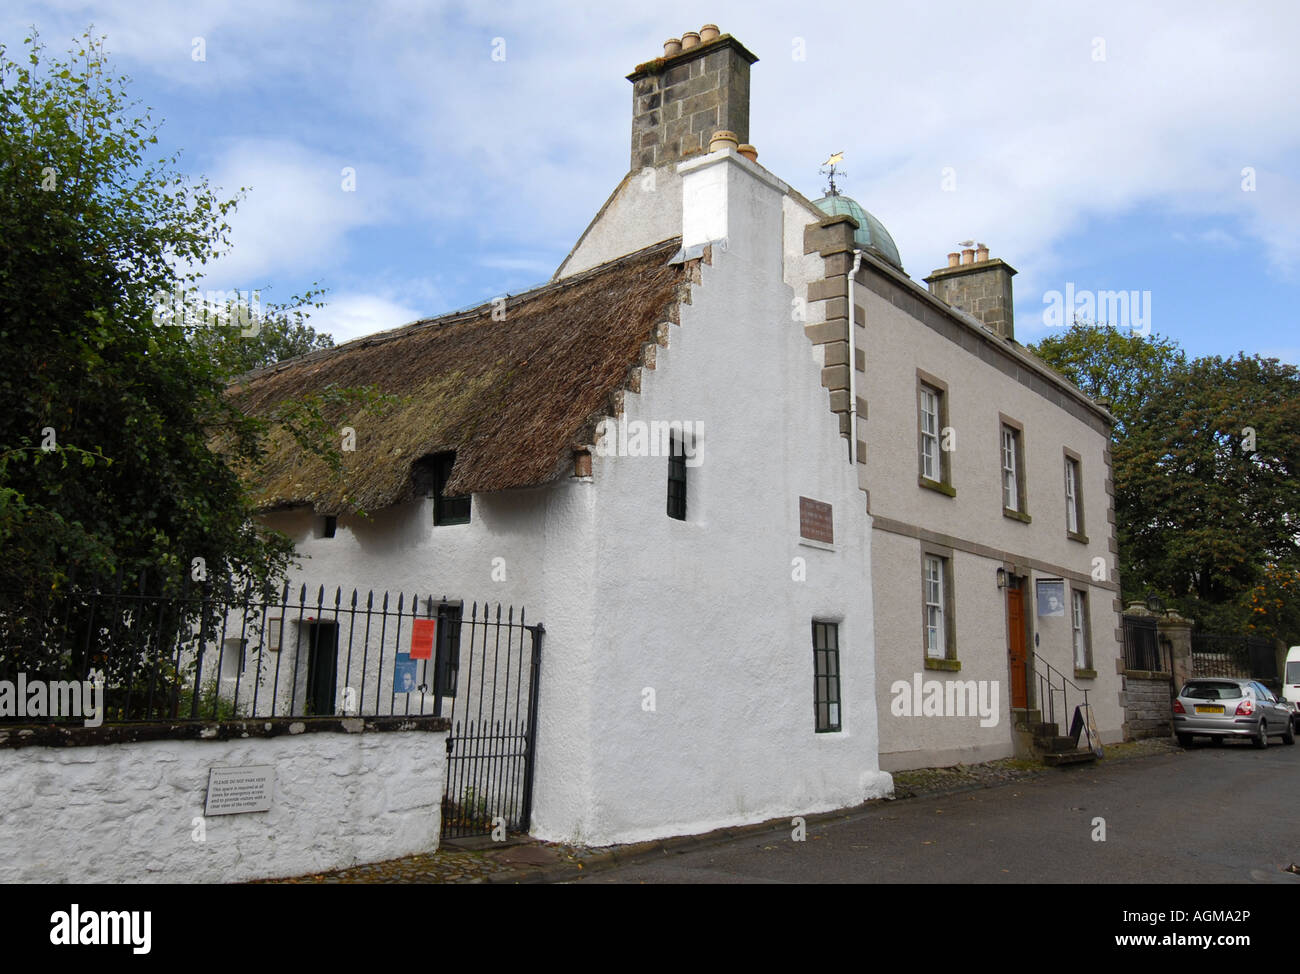 THE HUGH MILLER MUSEUM AND BIRTHPLACE IN  CROMARTY VILLAGE,SCOTLAND,UK. - Stock Image